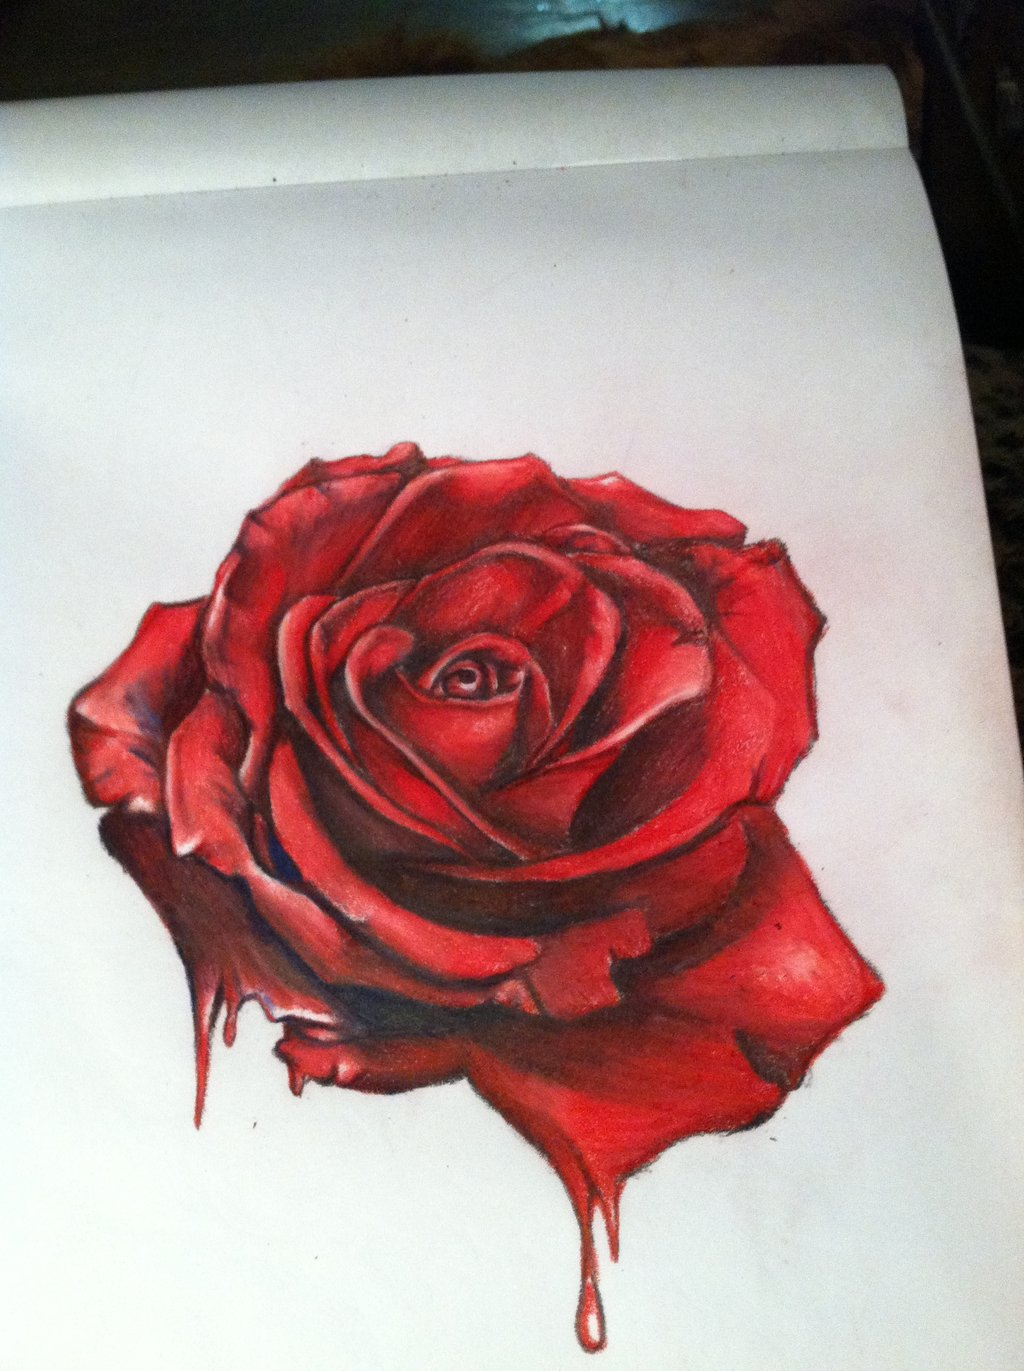 Drawn red rose bloody painter Rose drawing Drawing drawing Rose